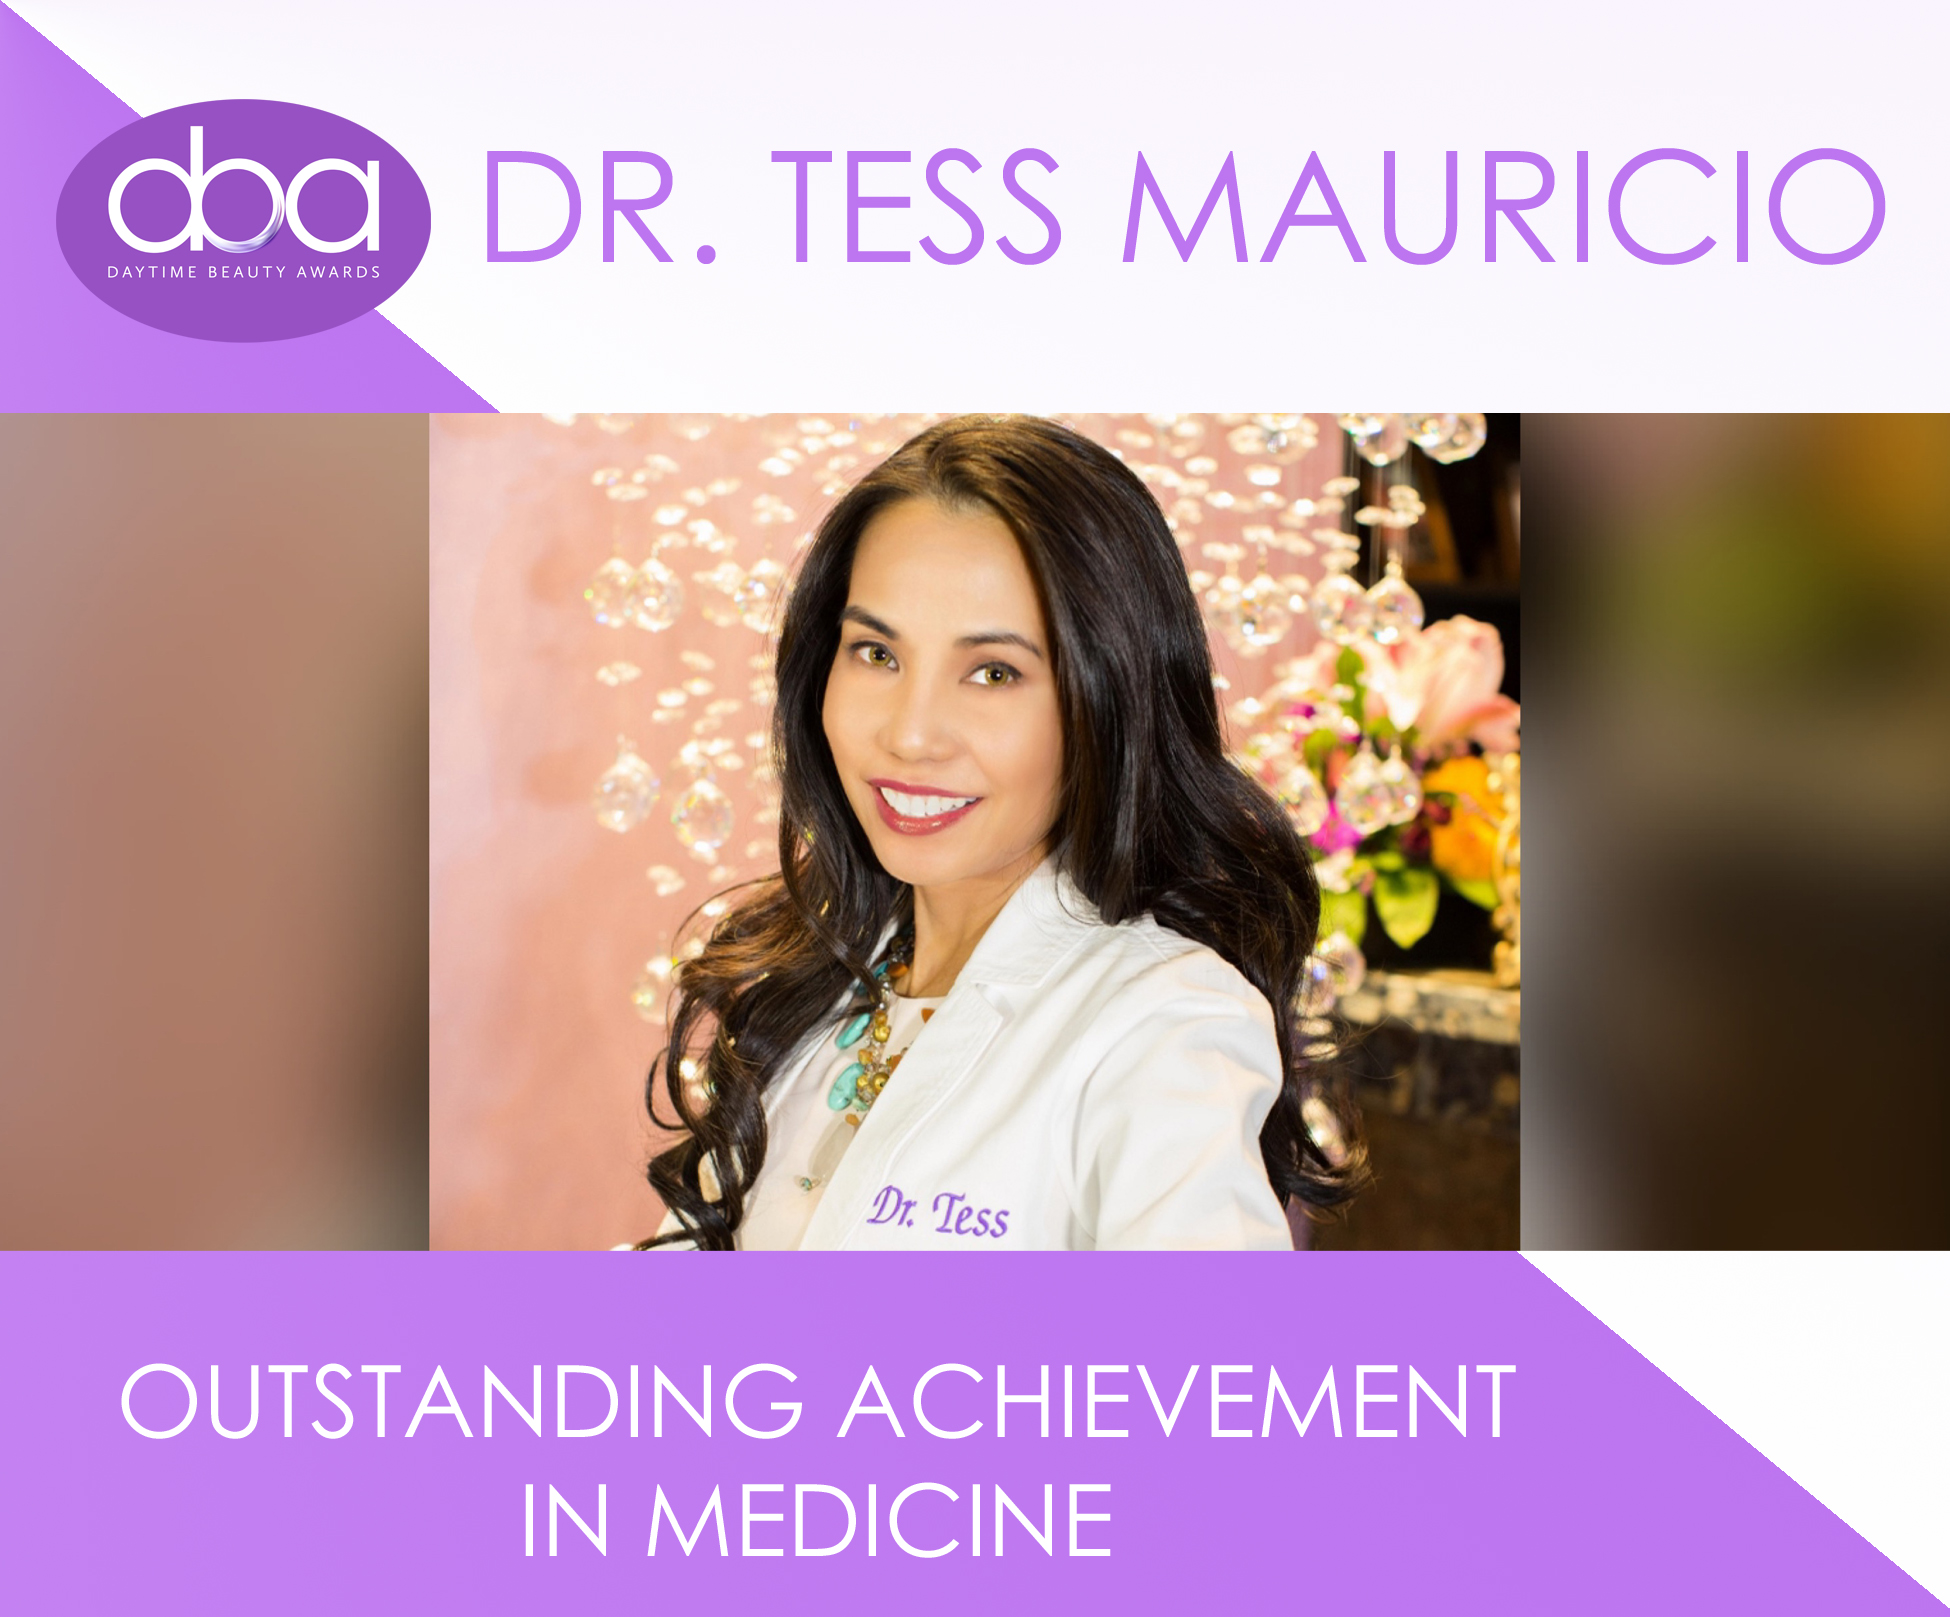 Dr. Tess Mauricio, daytime beauty awards